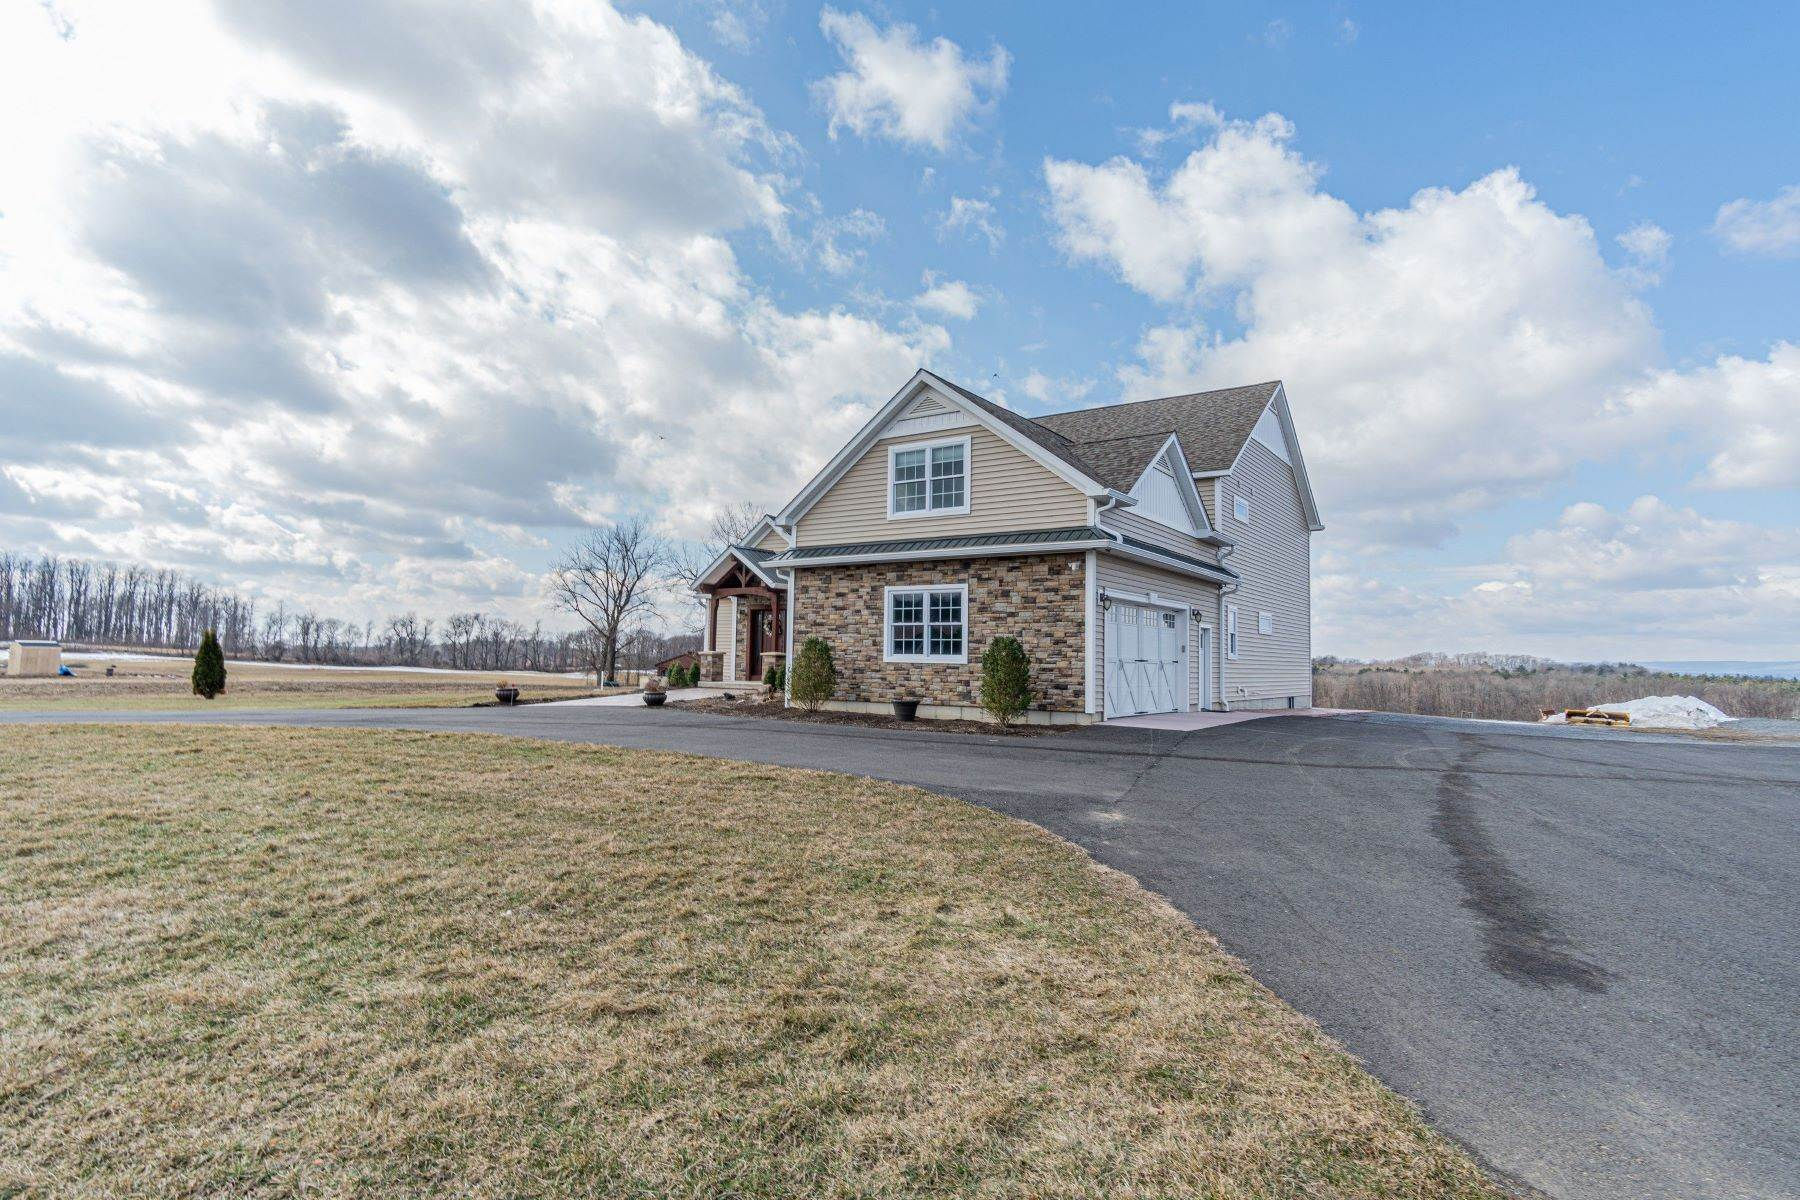 46. Single Family Homes for Sale at 1059 County Rt 70, Saratoga Tov, Ny, 12170 1059 County Rt 70 Stillwater, New York 12170 United States